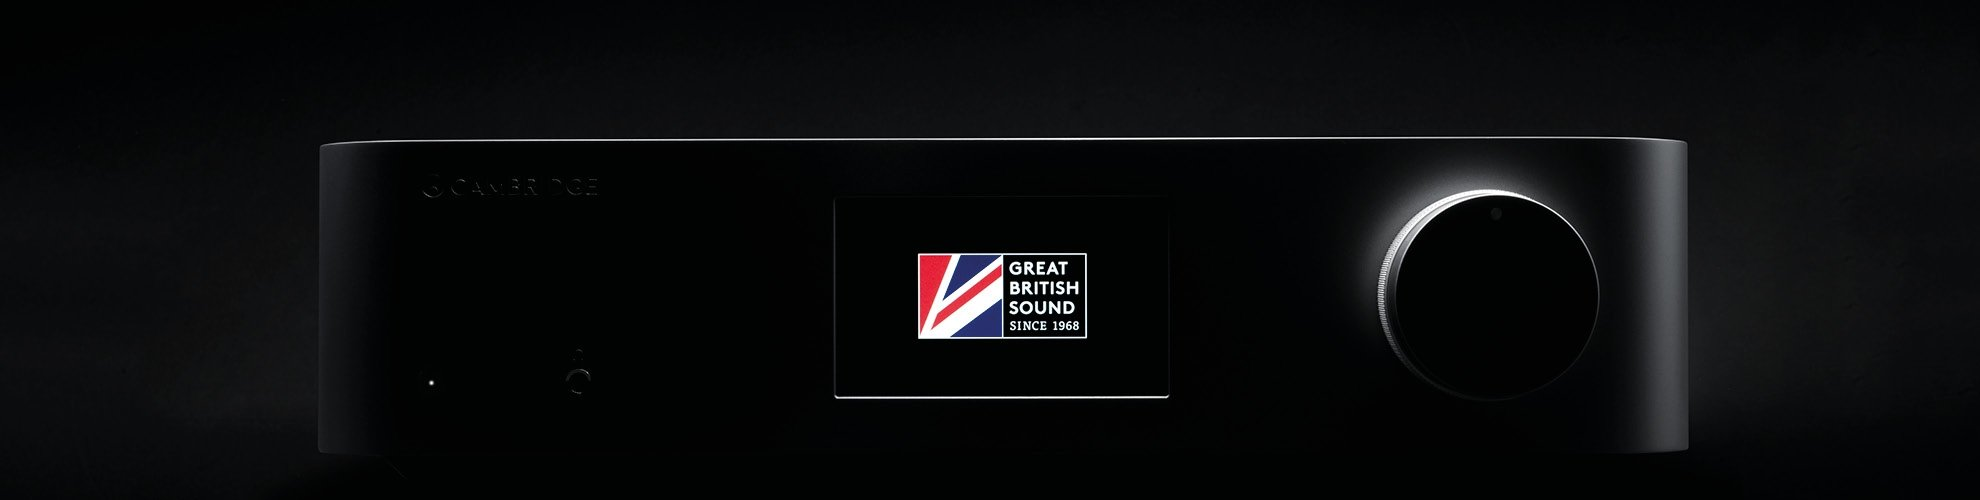 Great British Sound 的五十年 - 庆祝Cambridge Audio五十周年